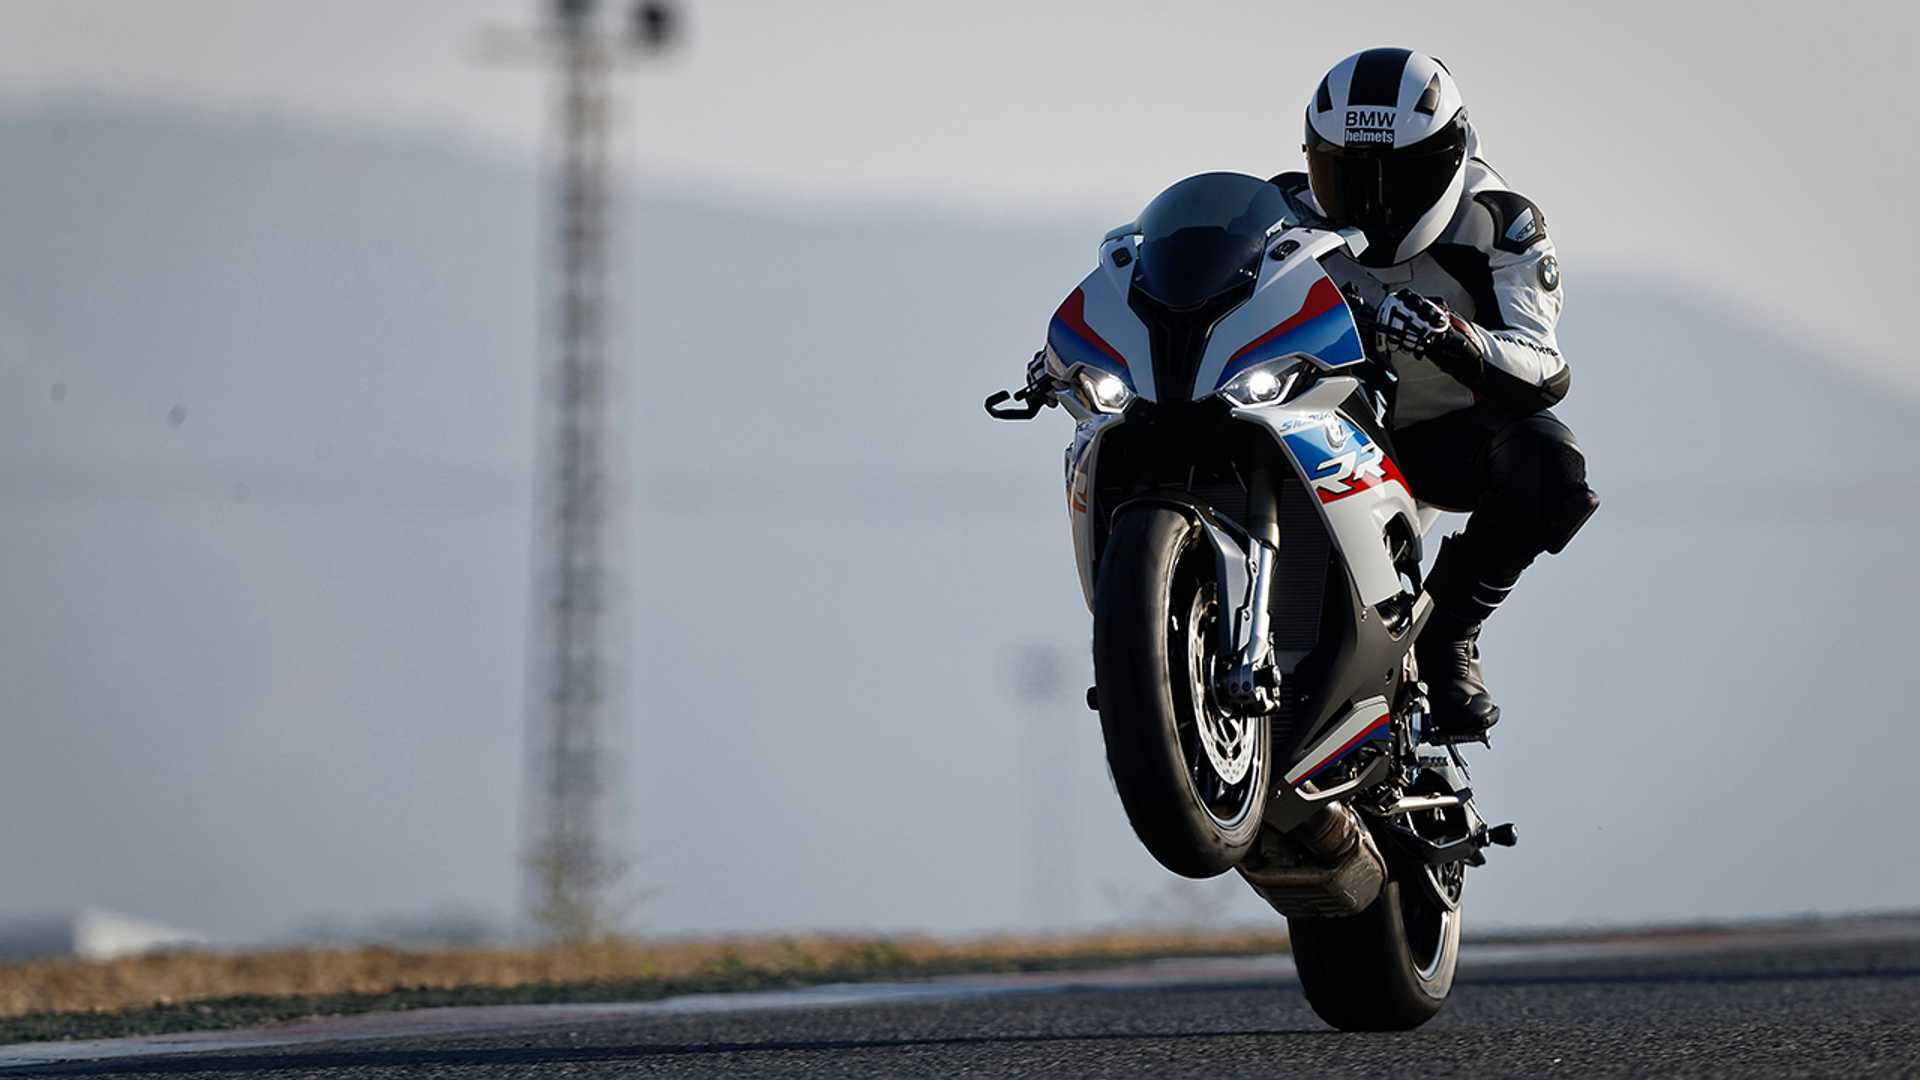 BMW S1000RR to get special M parts